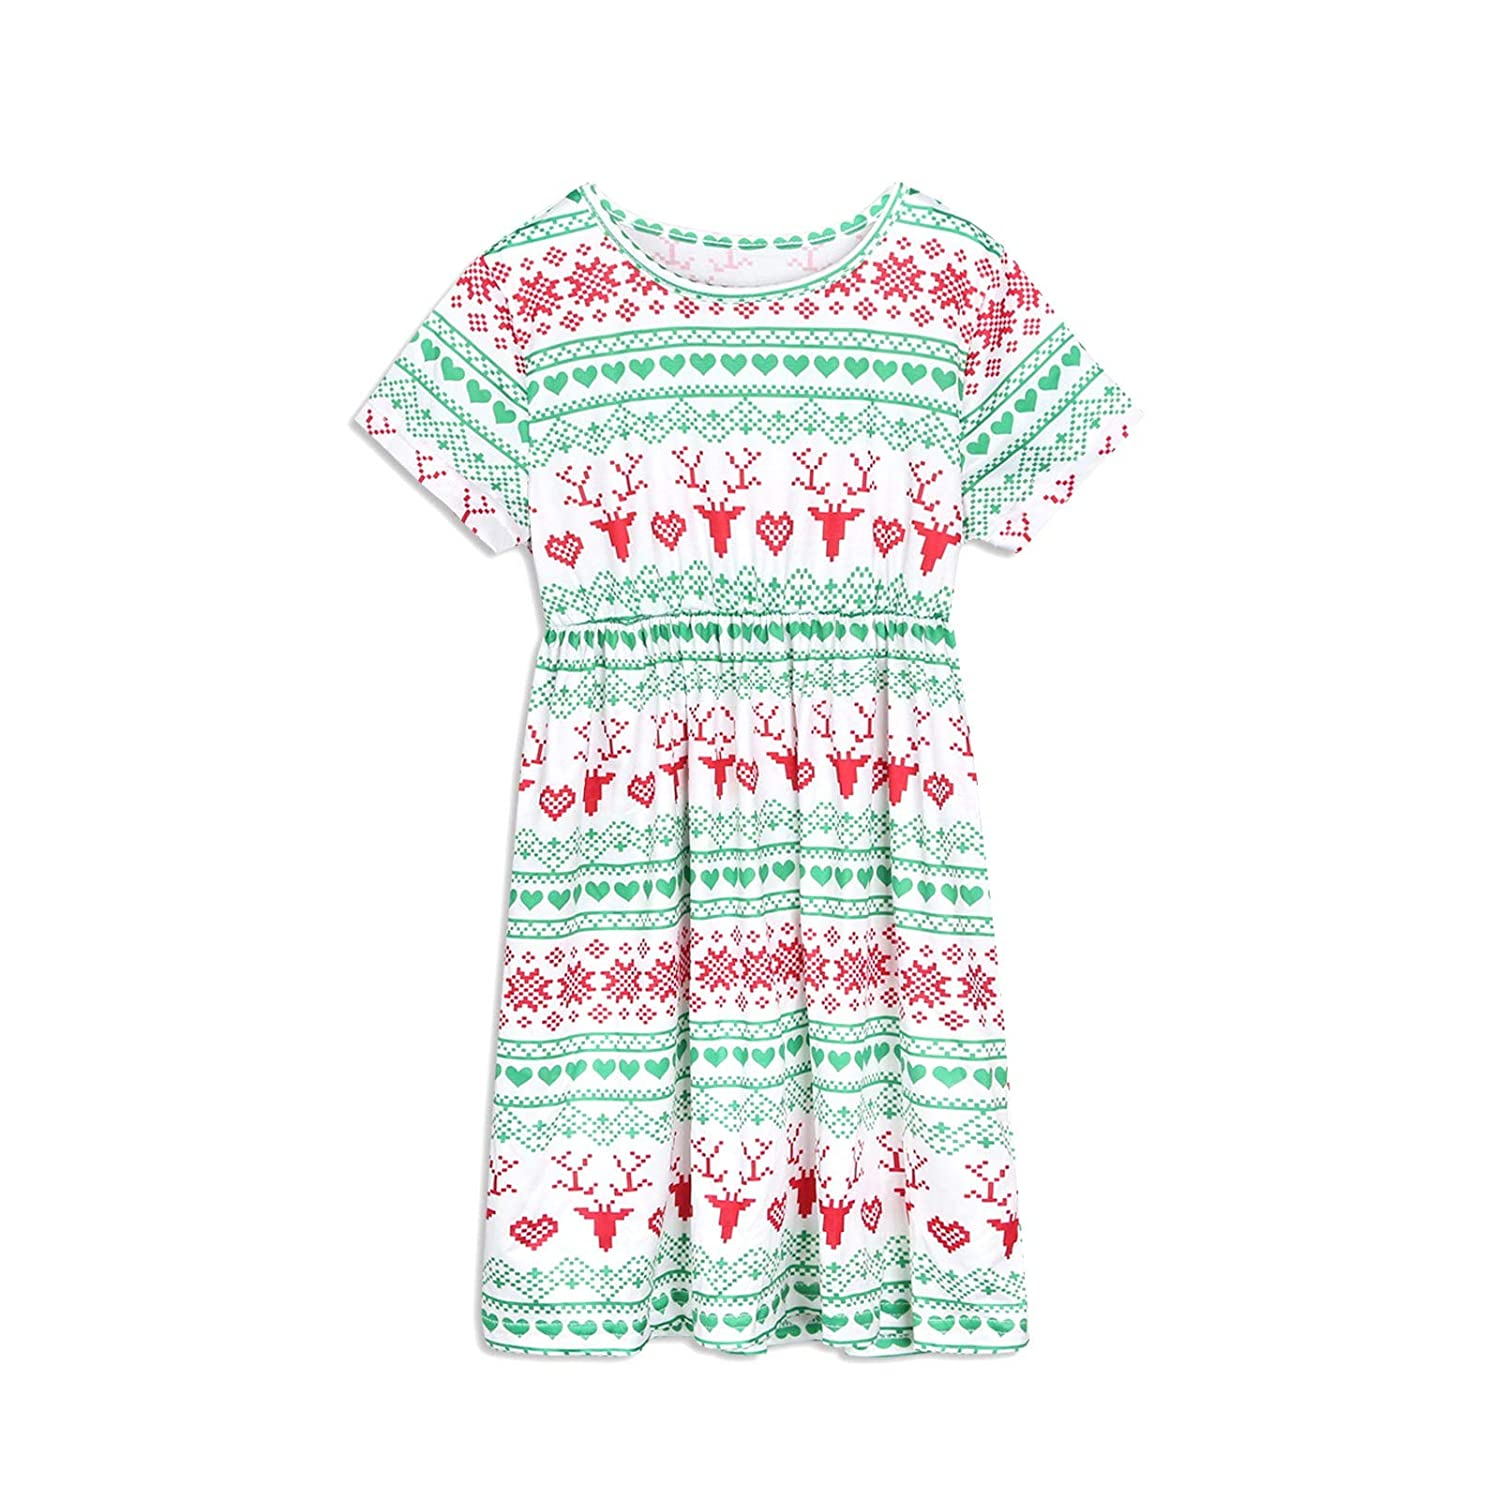 PatPat Matching Family Festival Pajamas Set Two Piece Short Sleeve Sleepwear Letter Printed Loungewear for Adult Girls Boys